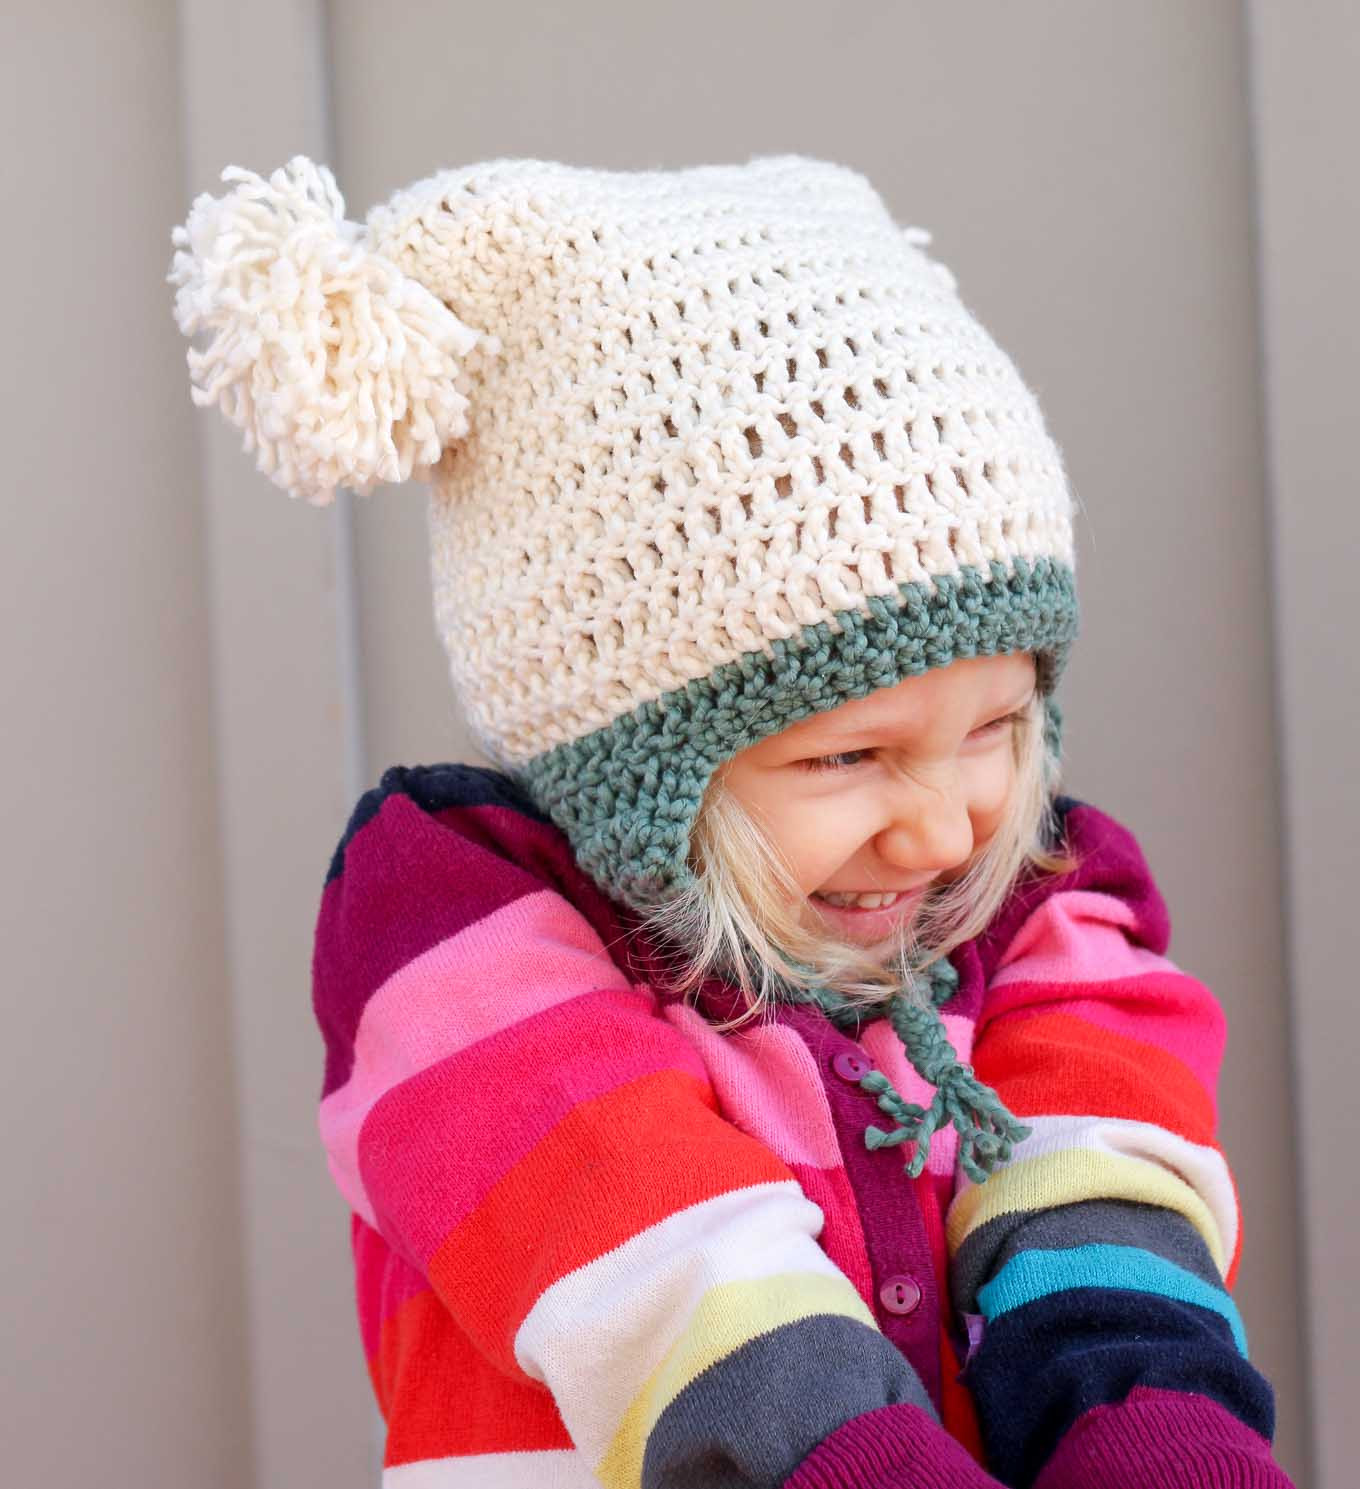 New Double Pom Pom Hat Free Crochet Patterns for Beginners Free Crochet Beanie Hat Pattern Of Amazing 48 Images Free Crochet Beanie Hat Pattern